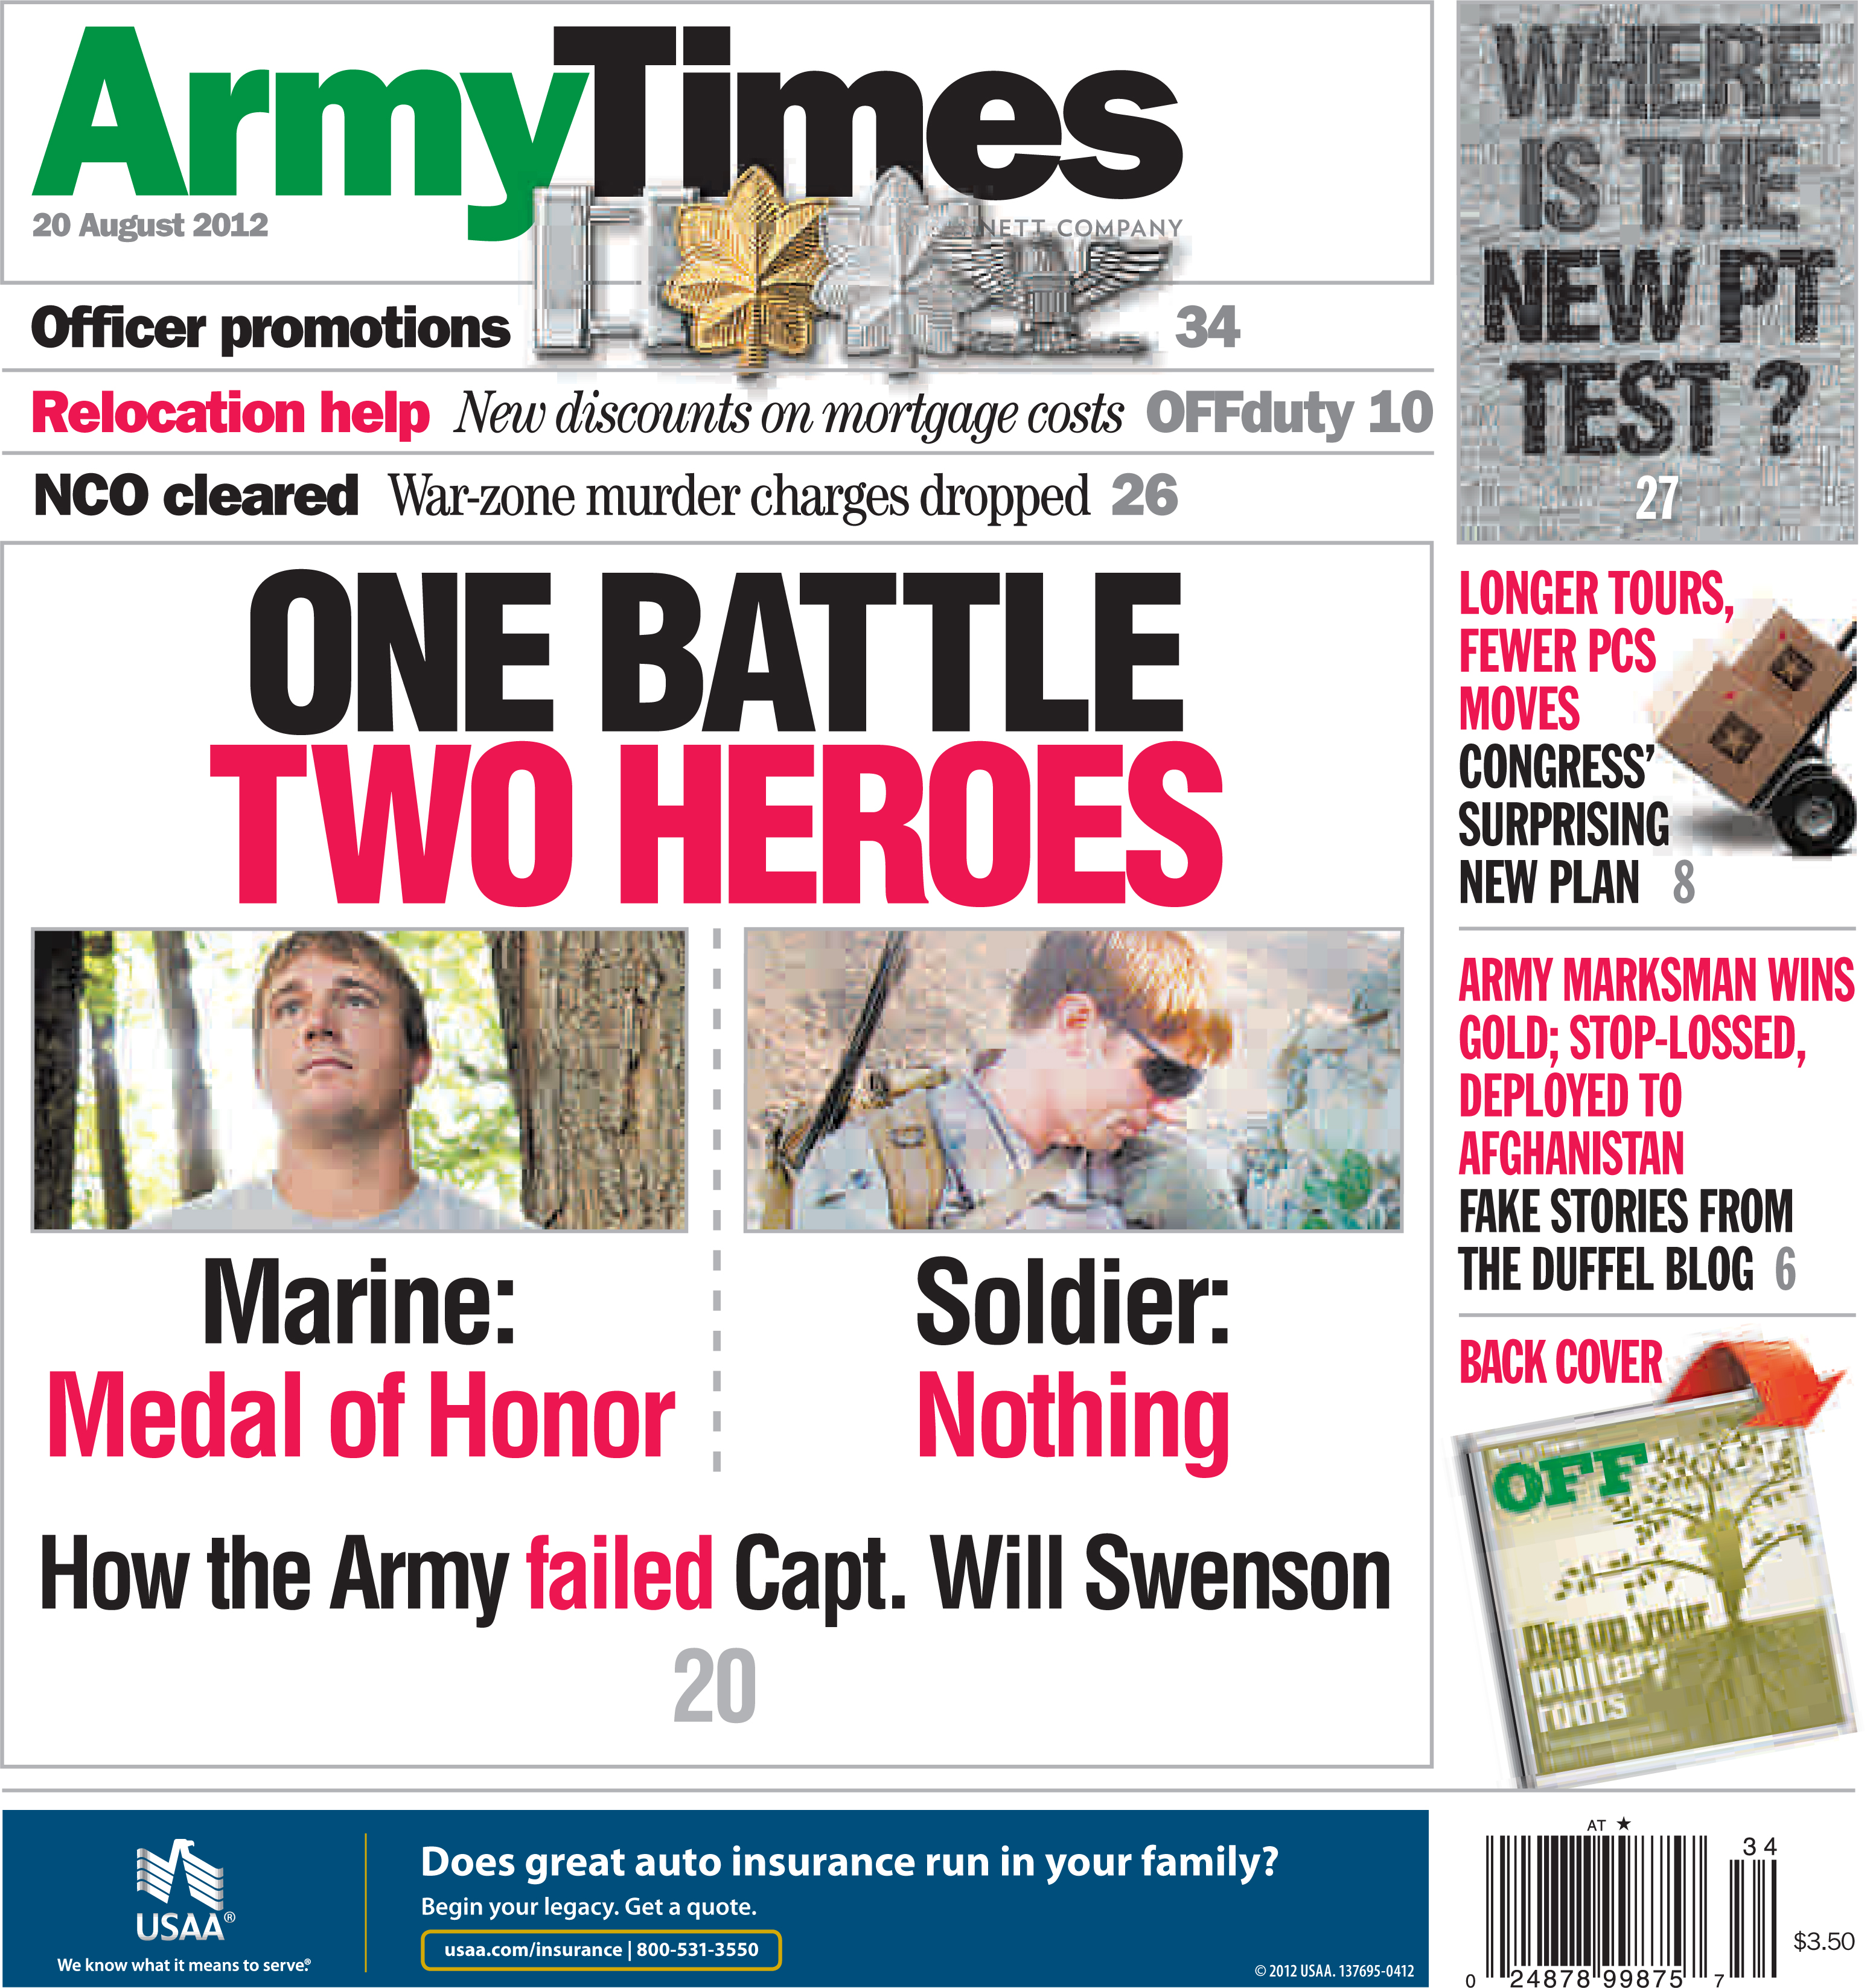 This week's Army Times: Medal of Honor request 'lost,' NCO's war ...